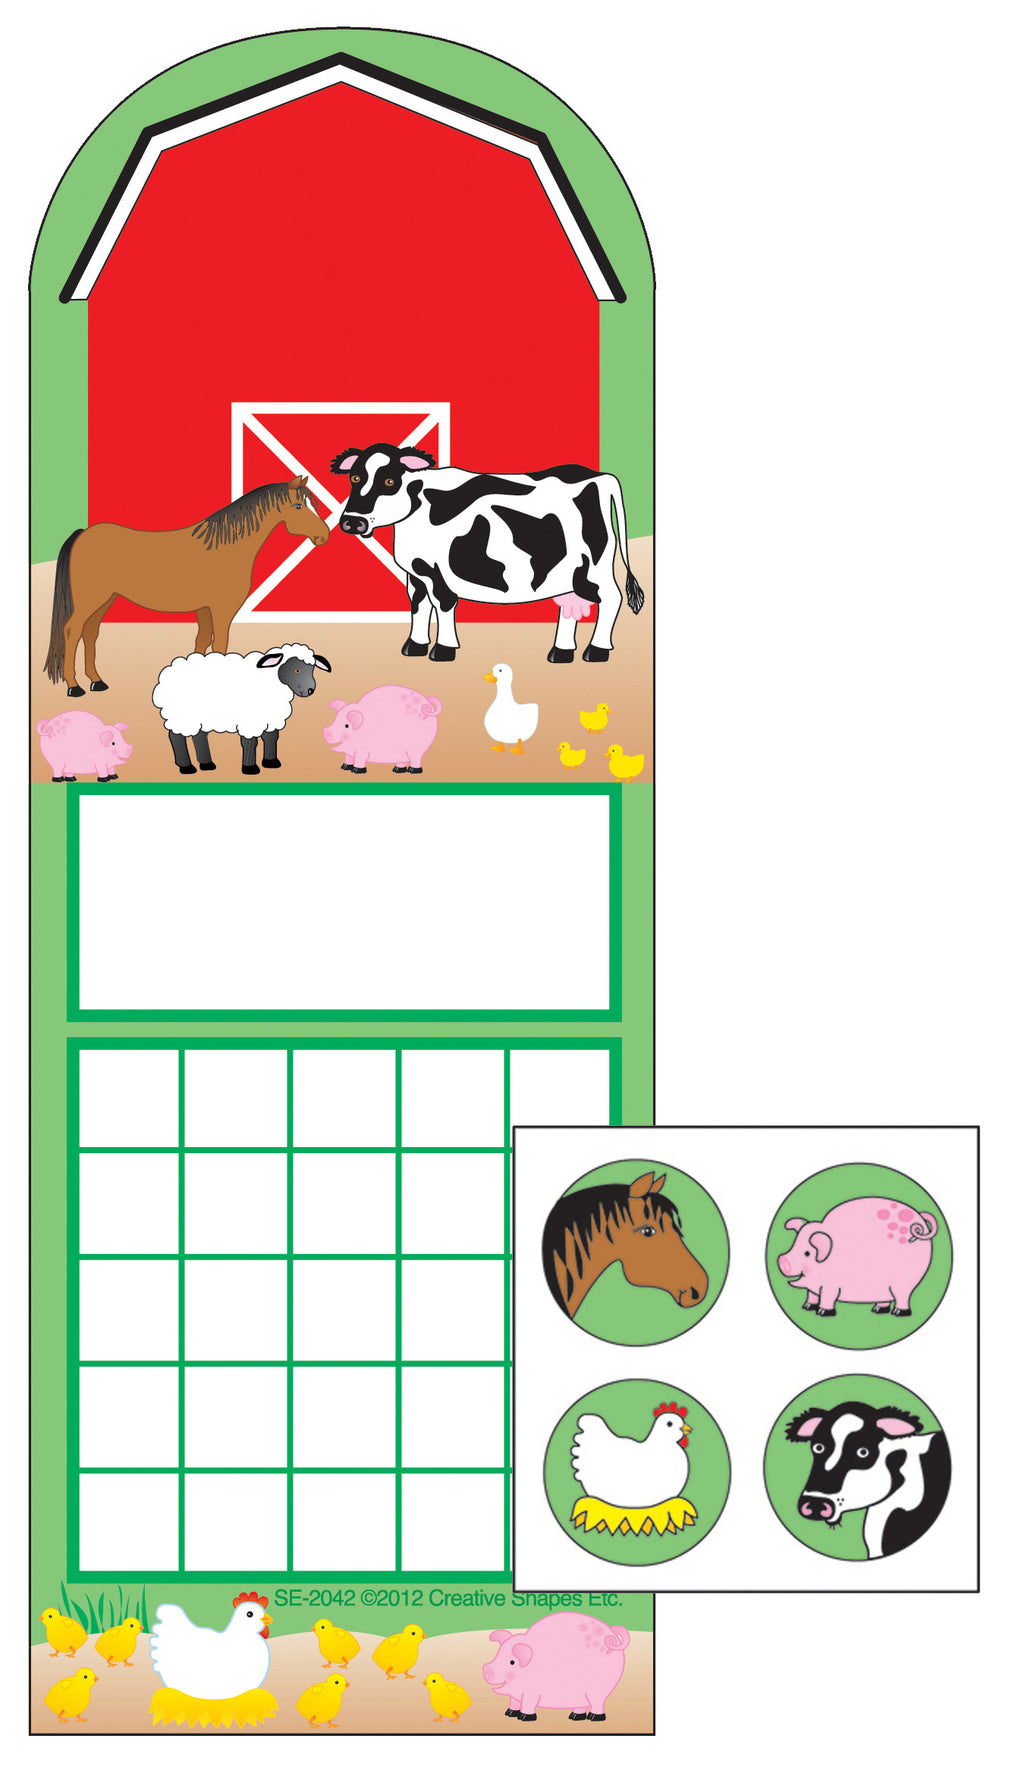 Incentive Sticker Set - Farm - Creative Shapes Etc.